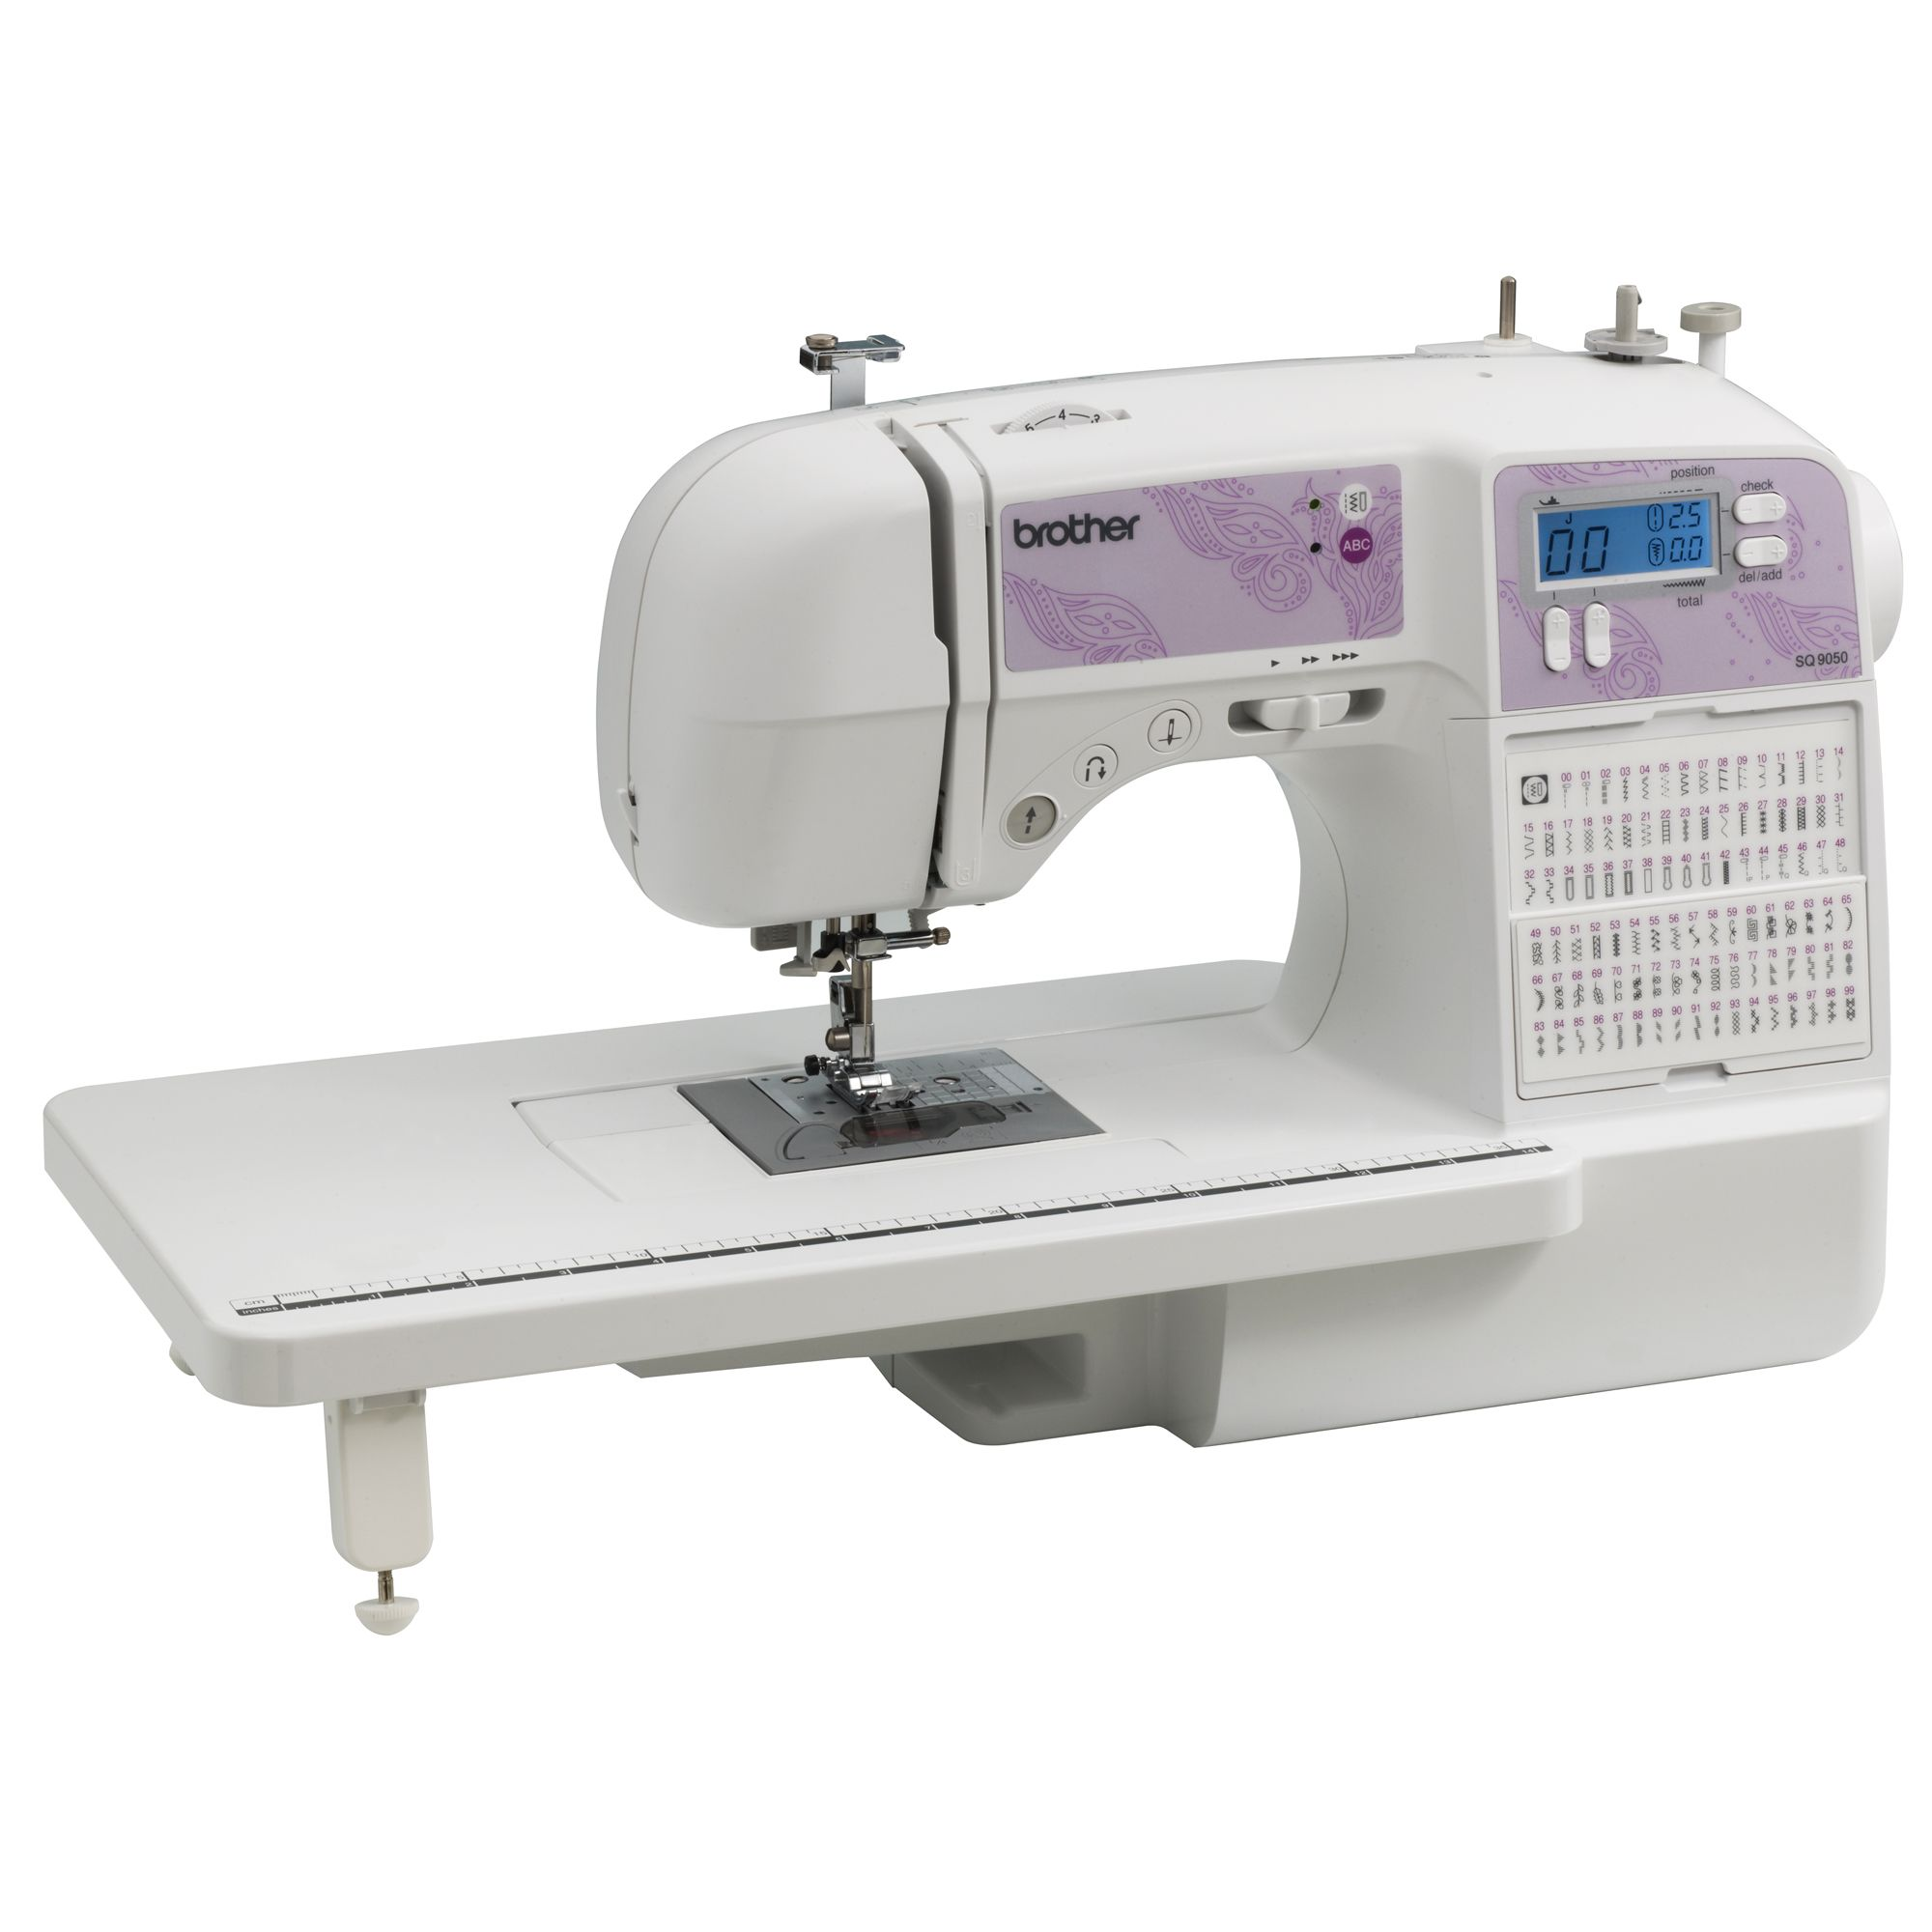 Brother SQ9050 computerized sewing and quilting machine at Walmart ... : quilting machines canada - Adamdwight.com